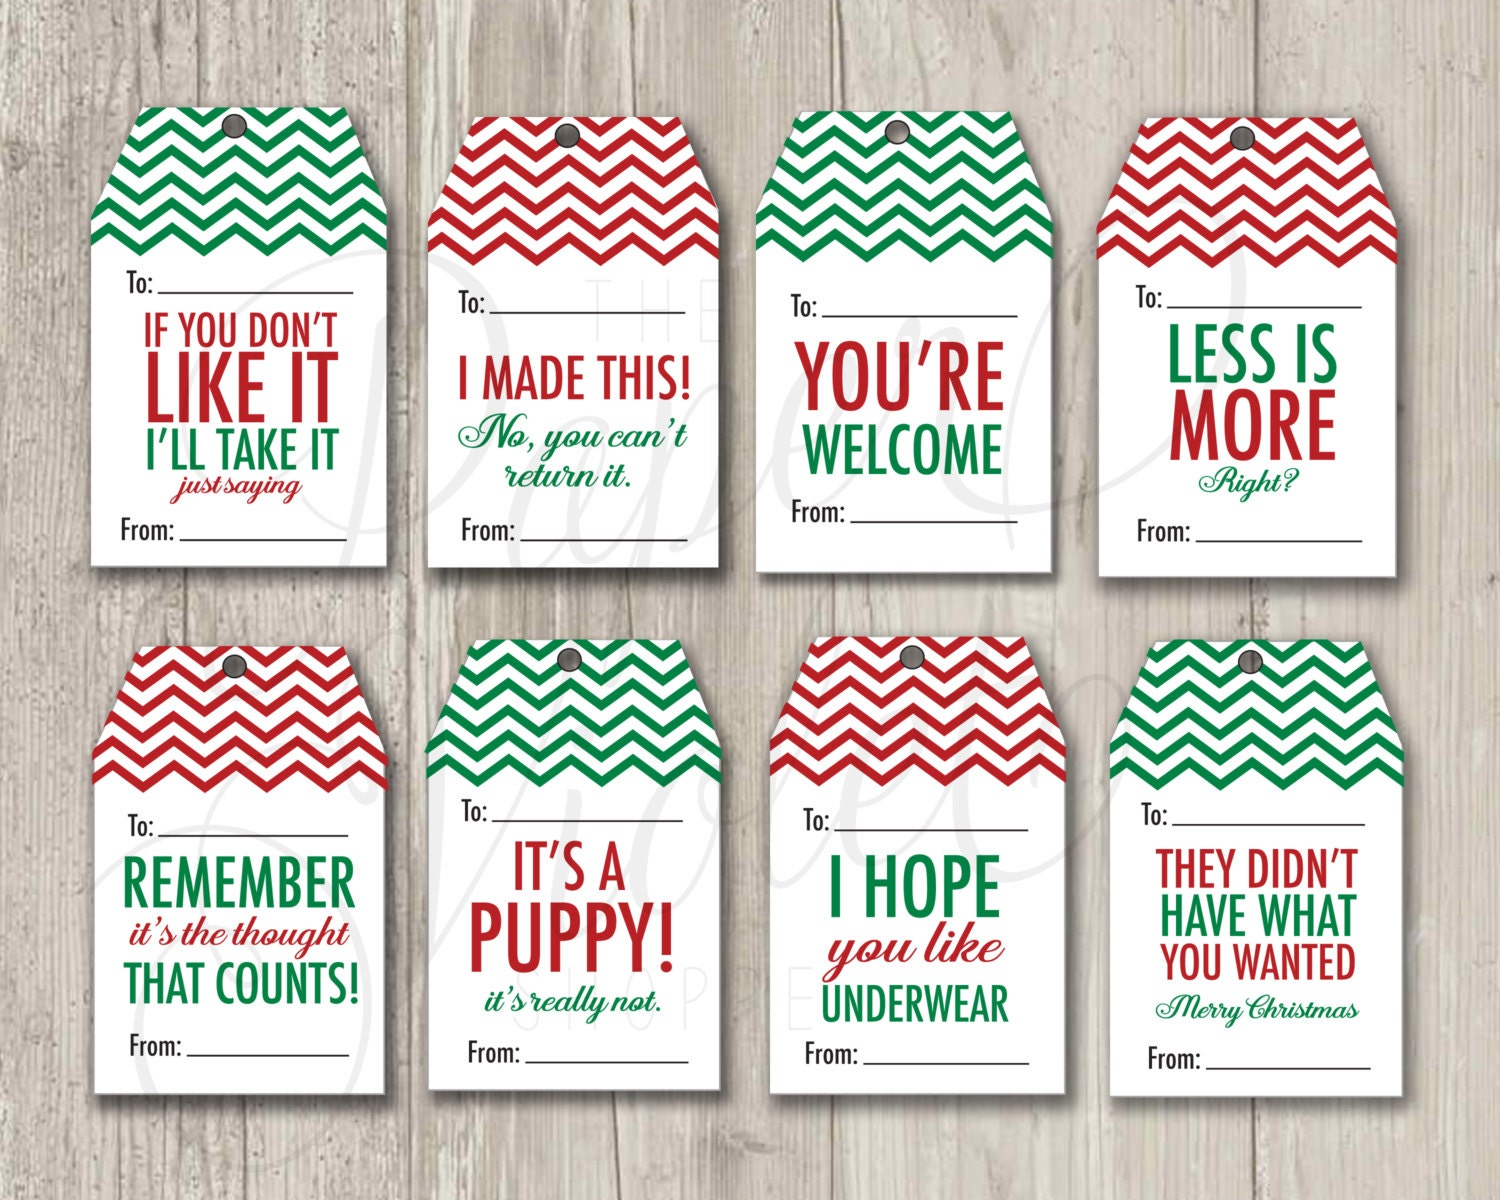 Christmas Tags: Funny Gift Tags Christmas Tags Mean Gift Tags Holiday Tags